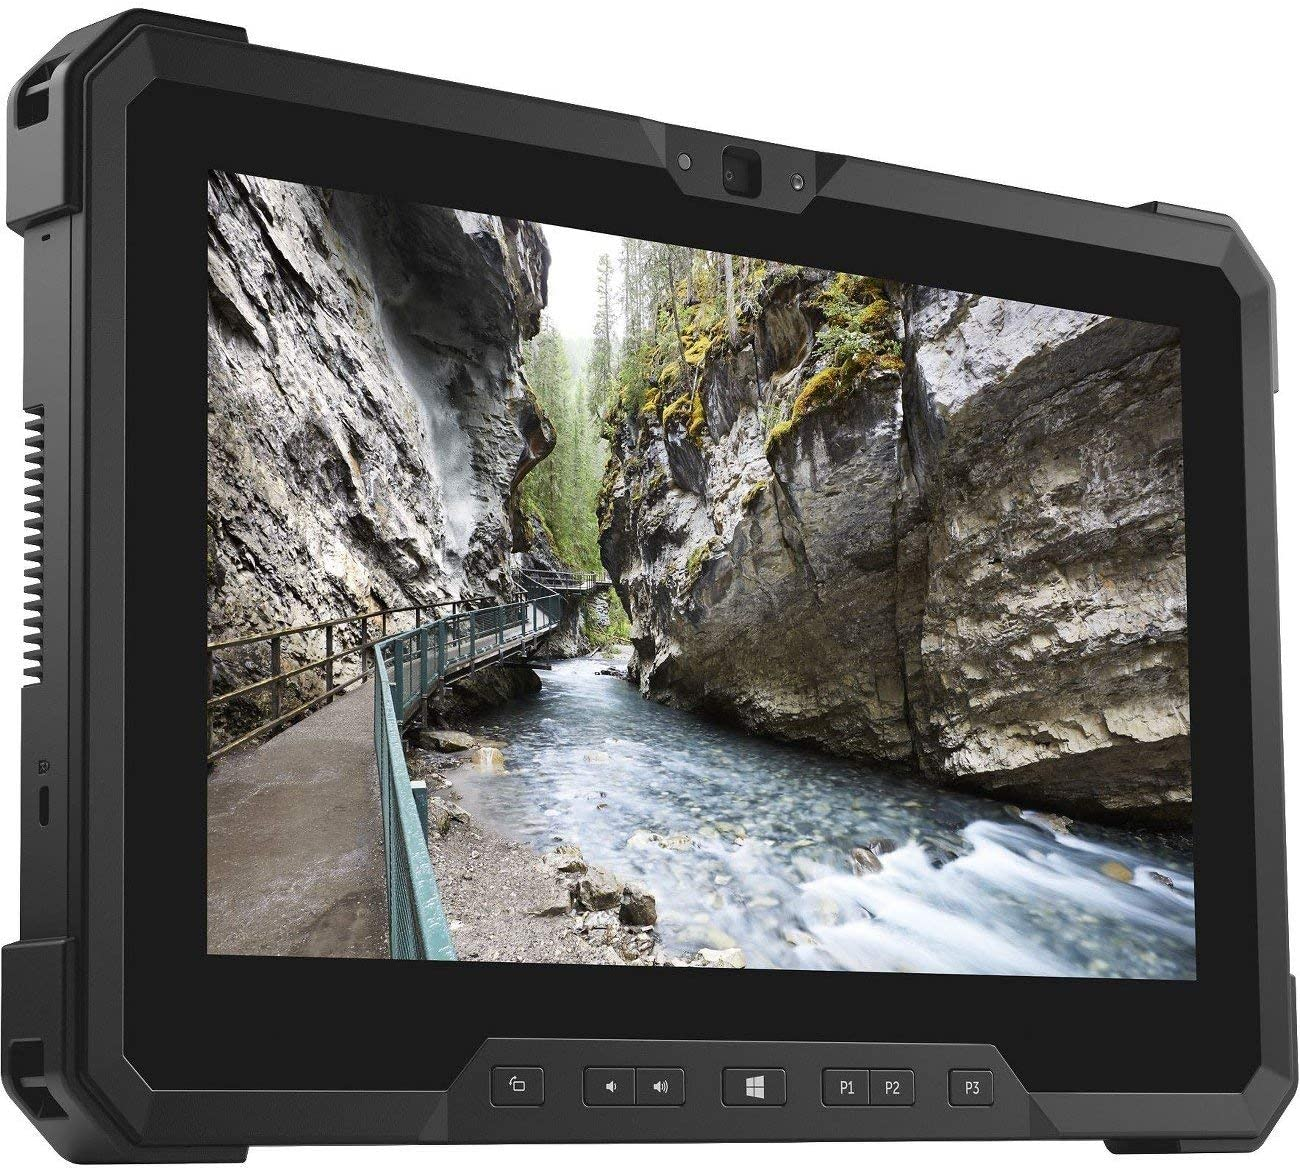 Dell Rugged Tablet 7212, WIN10, Intel i5-7300U@2.6GHz, 11.6 inches FHD, 512GB SSD, 8GB, WiFi, Bluetooth (Renewed)